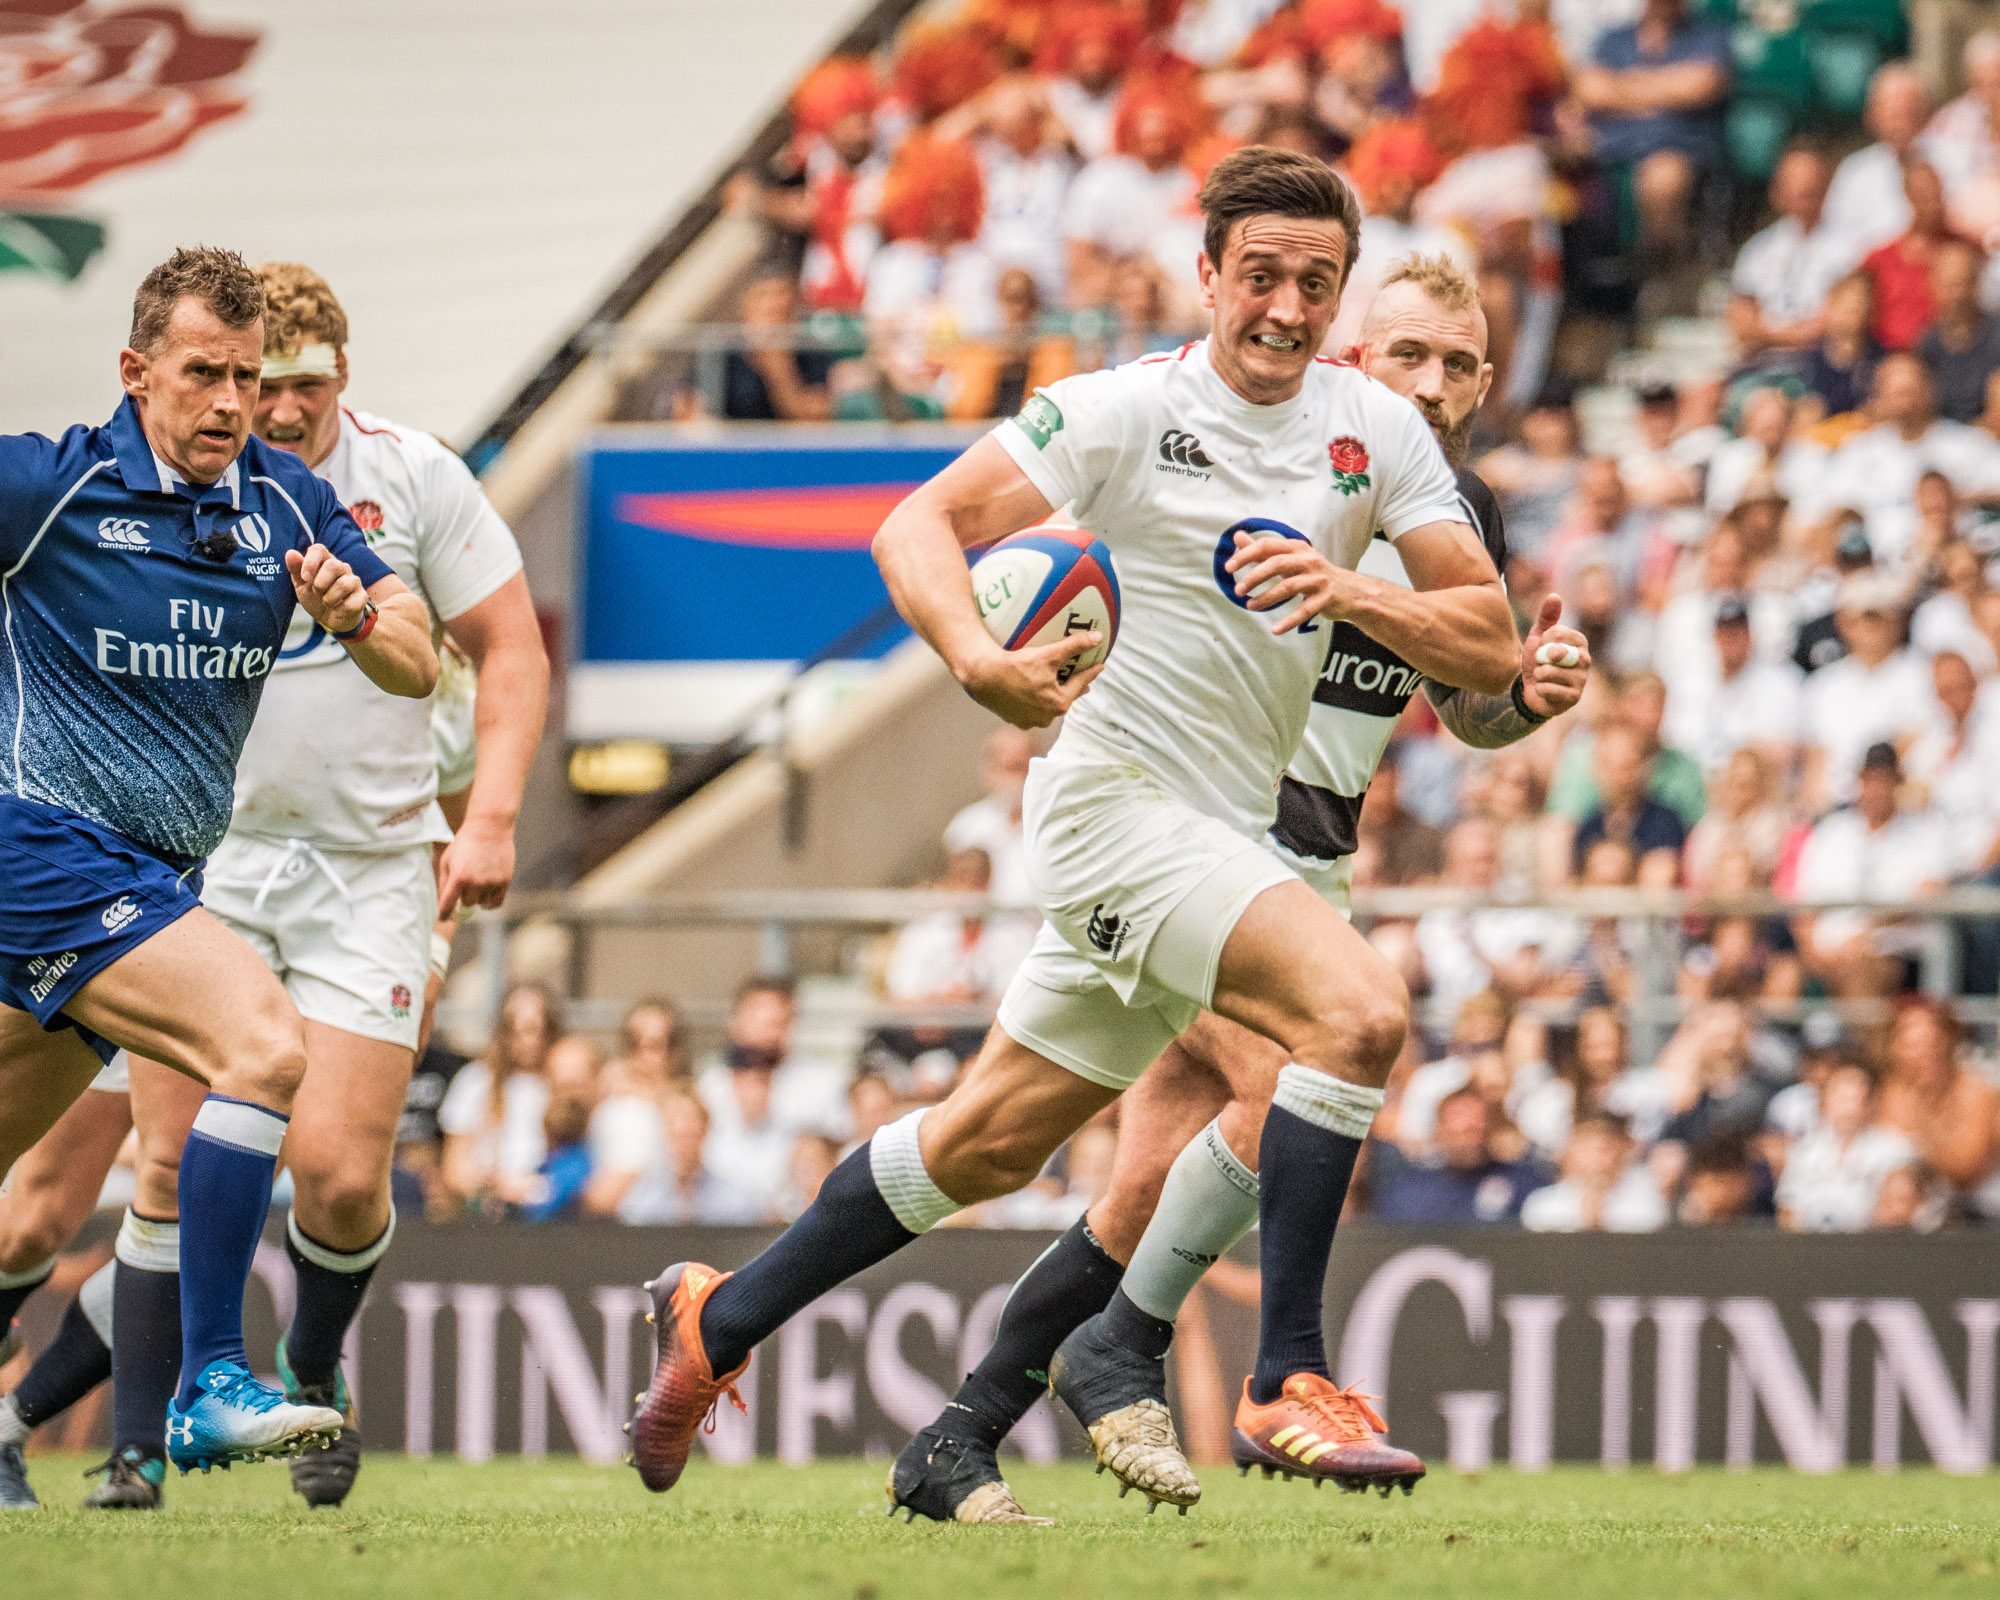 A run for Alex Mitchell as Nigel Owens races to keep up with play